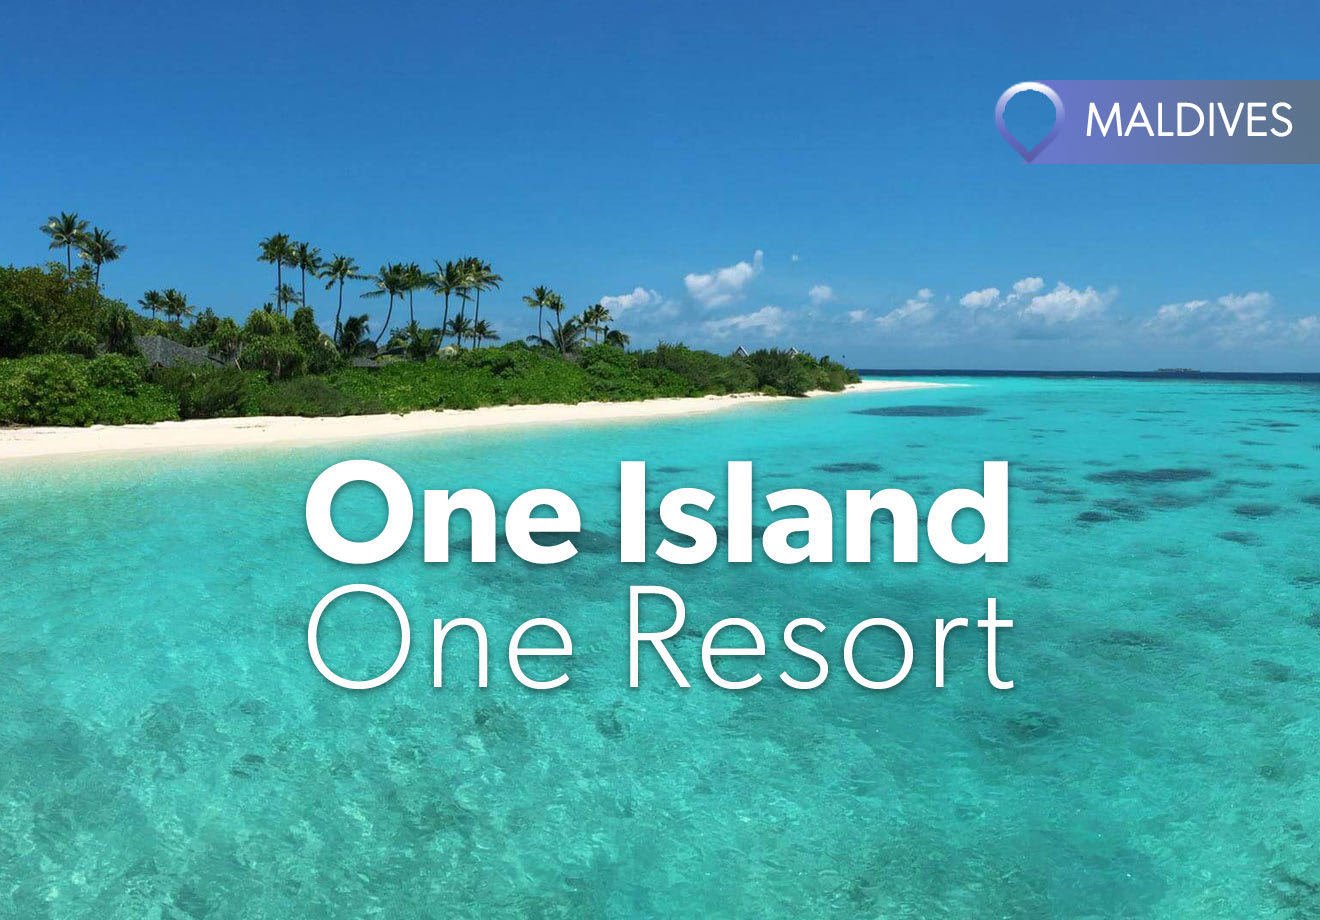 One Island One Resort